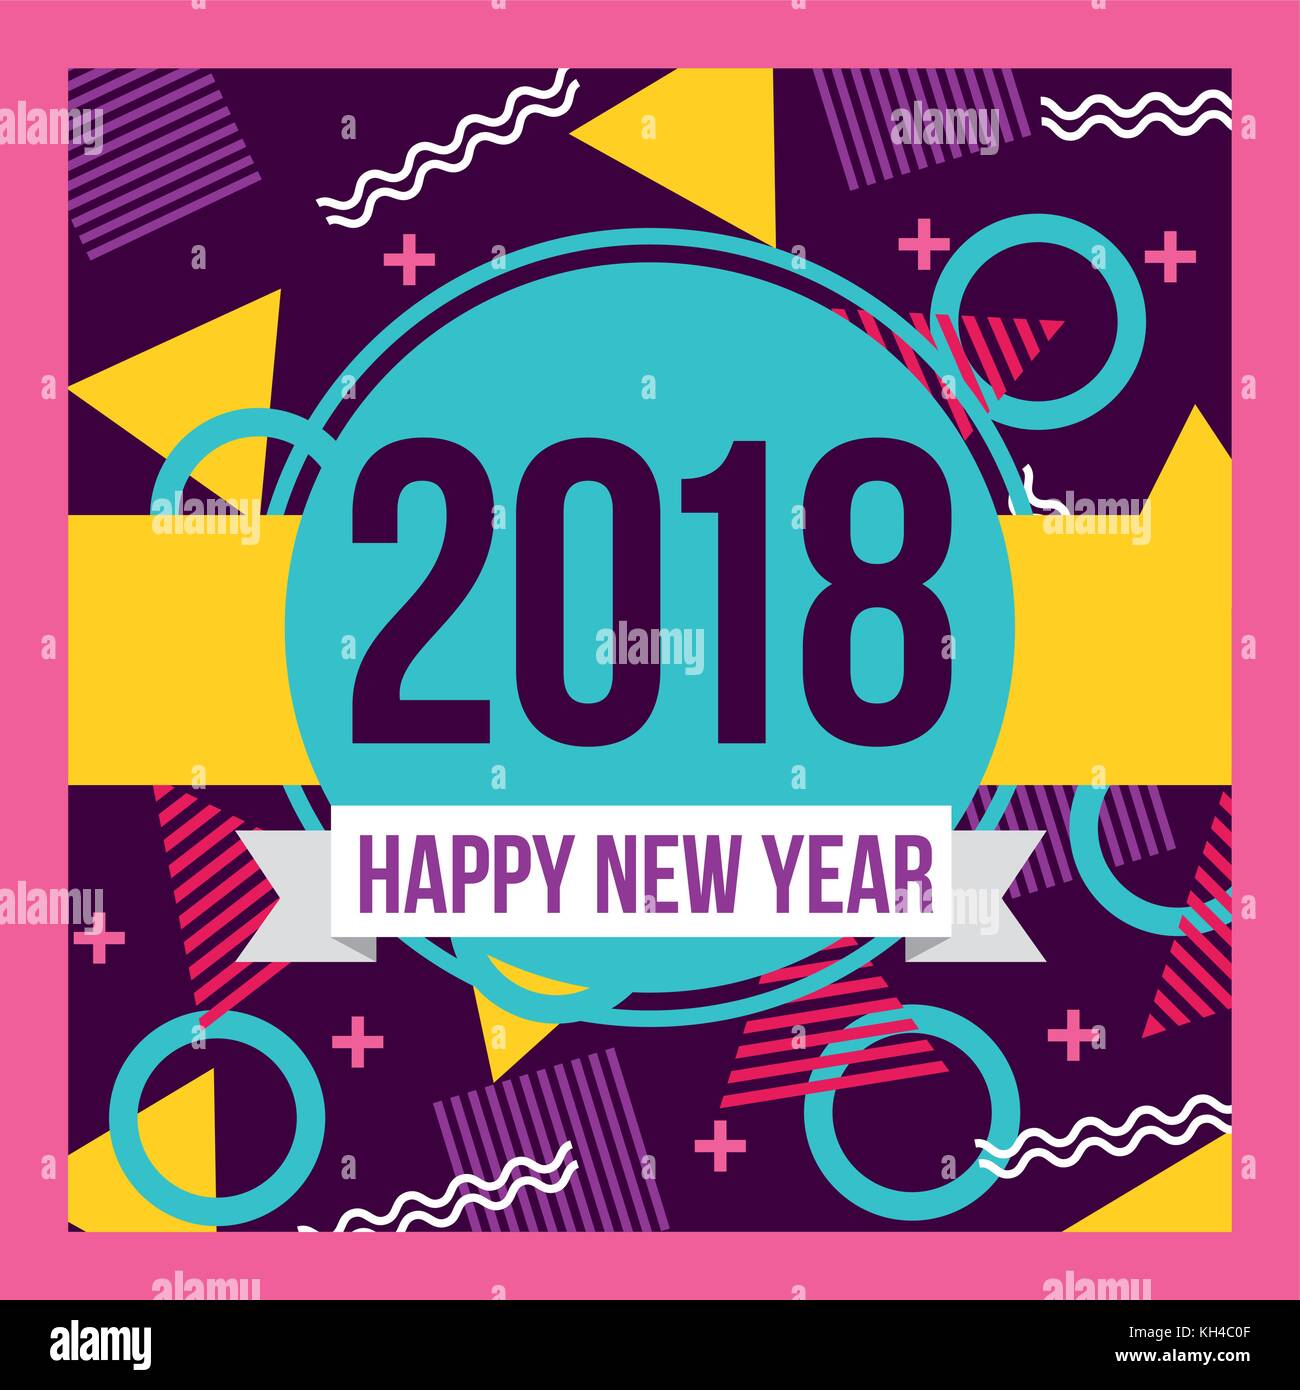 happy new year 2018 card greeting eve party celebration